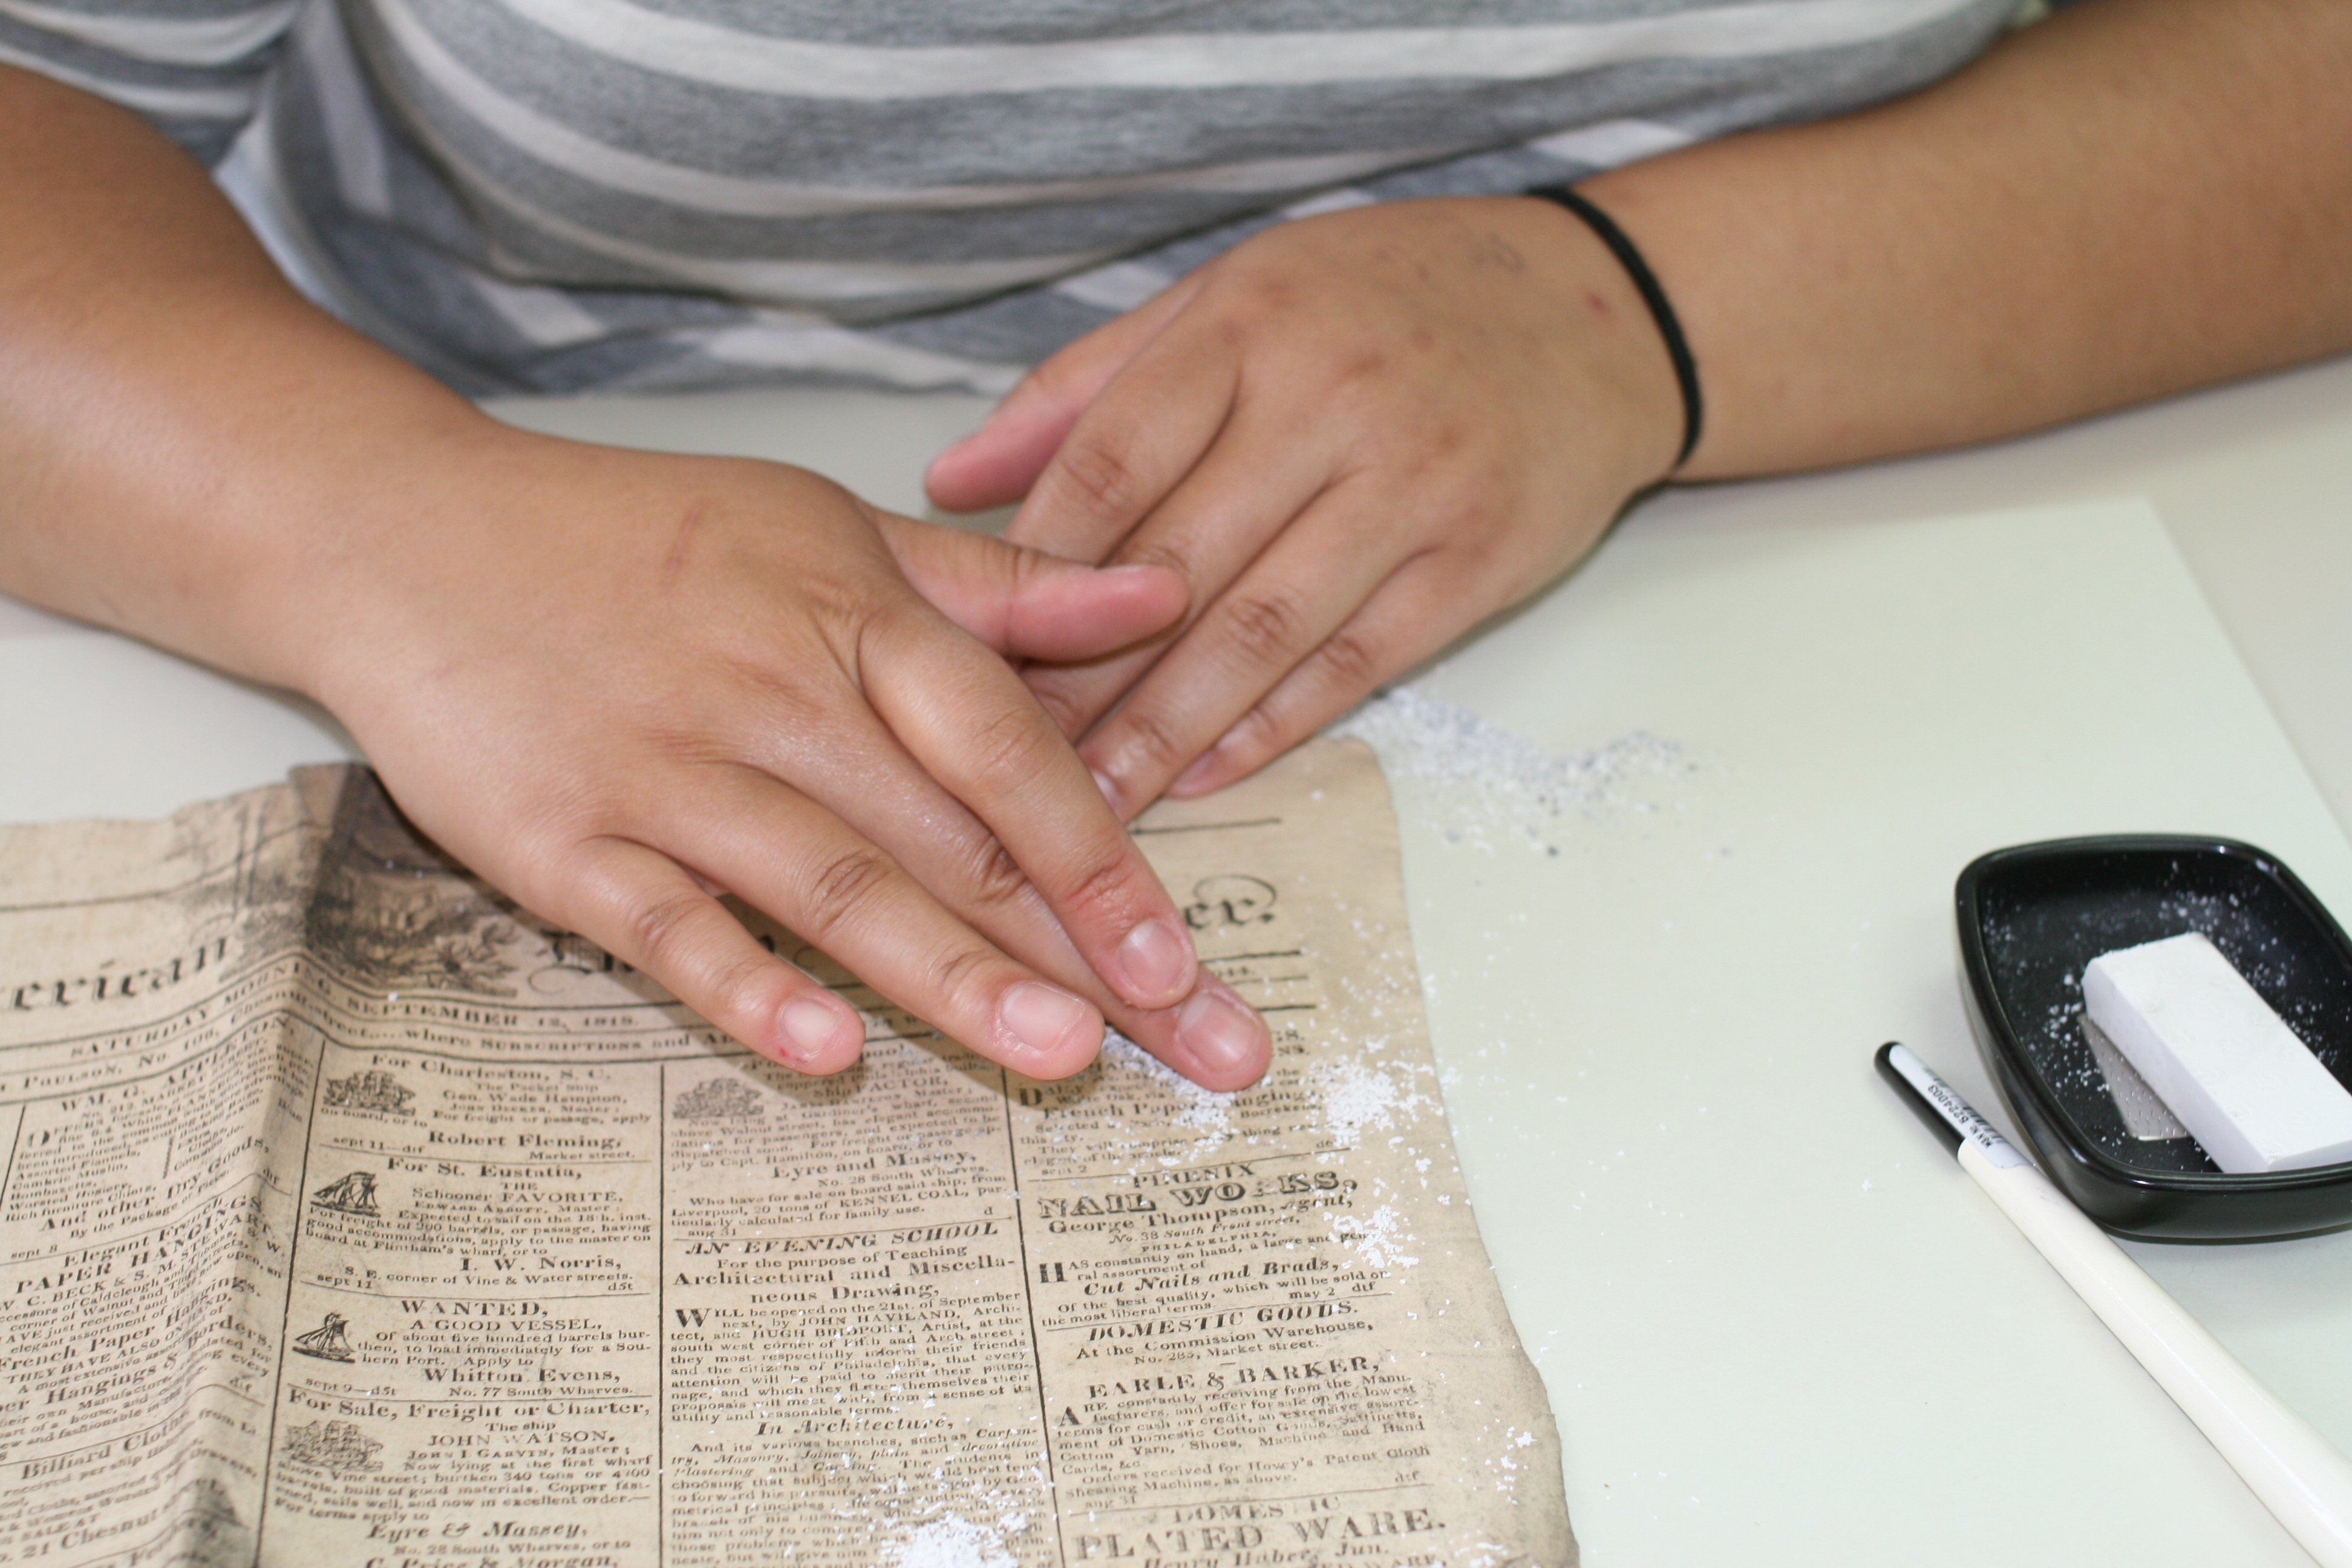 using eraser crumbs to clean newspaper